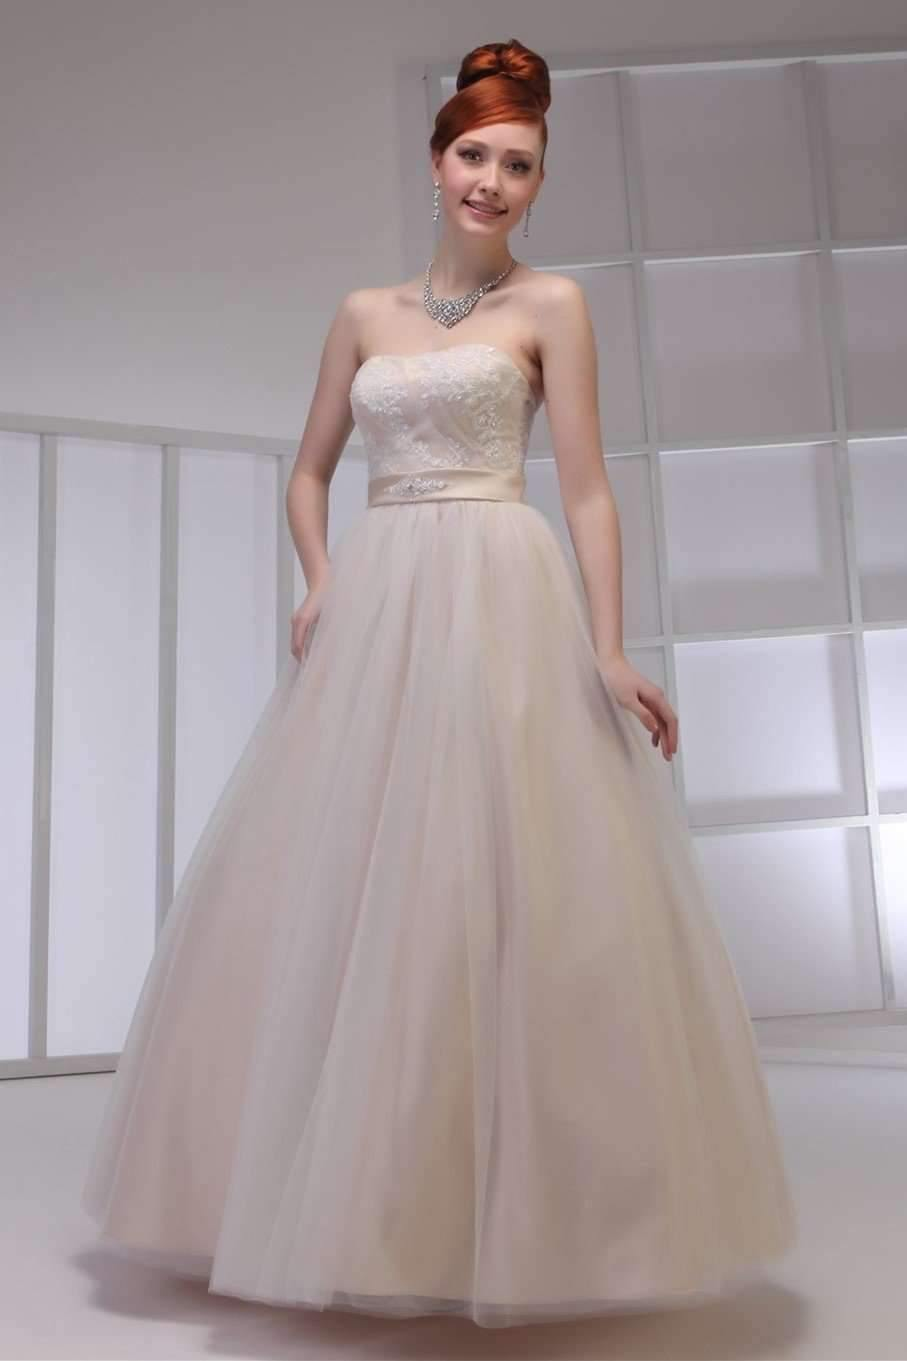 UK16 - SHONA - SALE - Adore Bridal and Occasion Wear